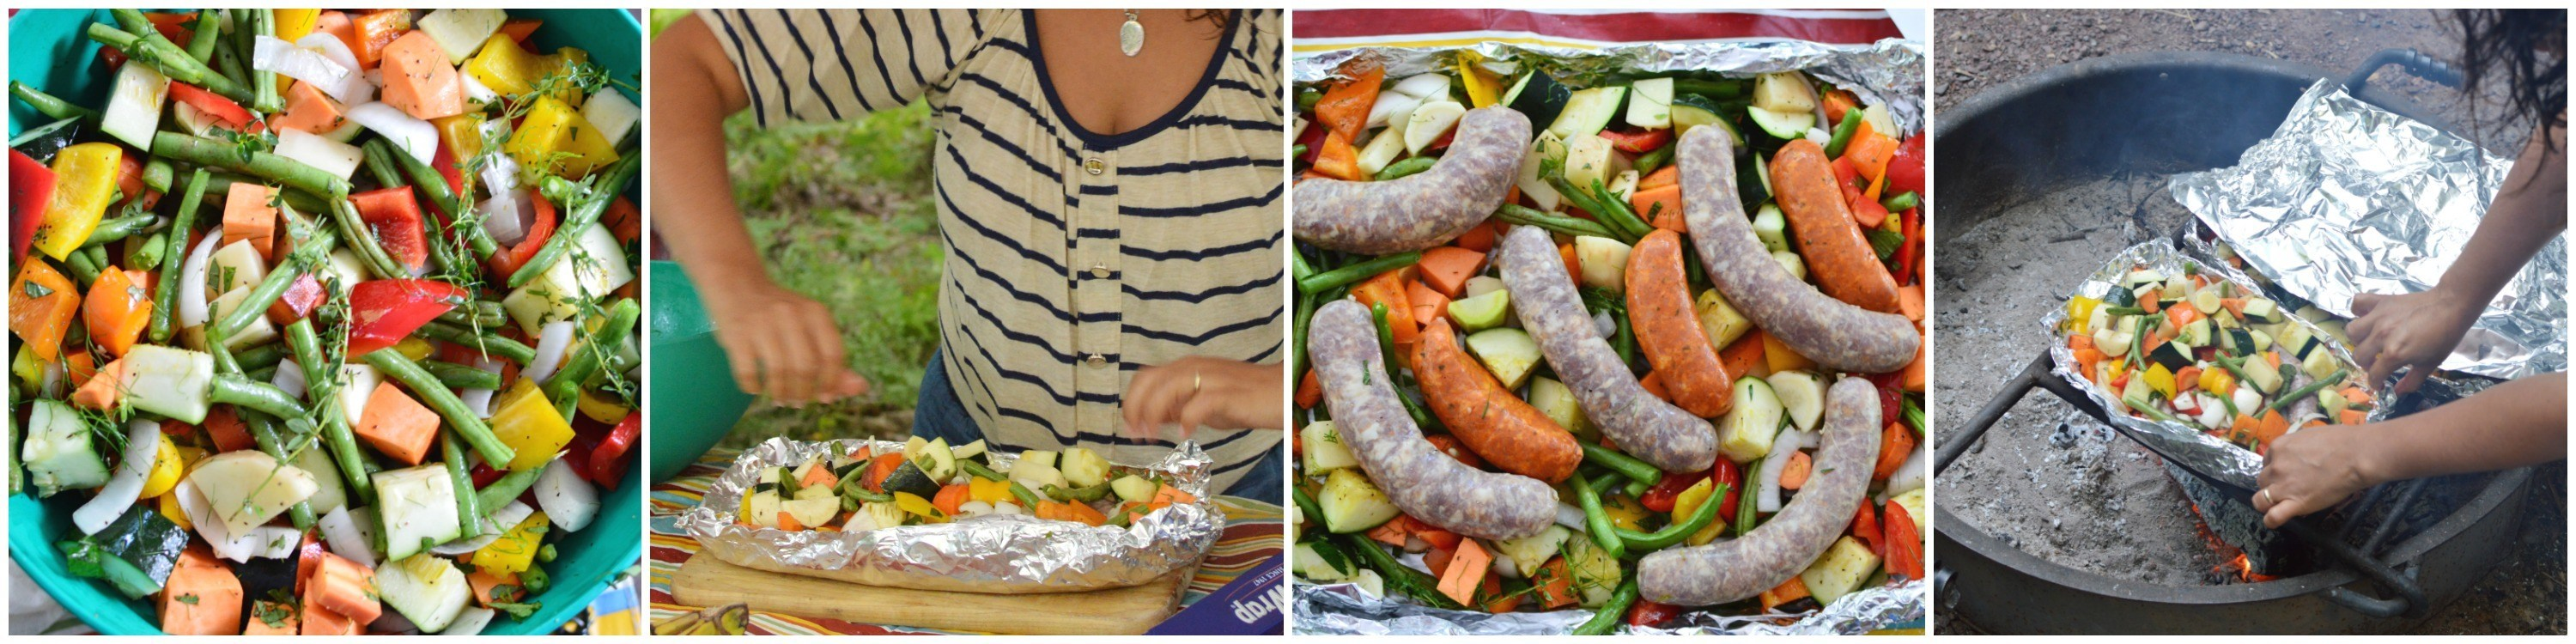 Vegetables-Sausage-Over-Campfire-Recipe6-horizontal.jpg#asset:2145